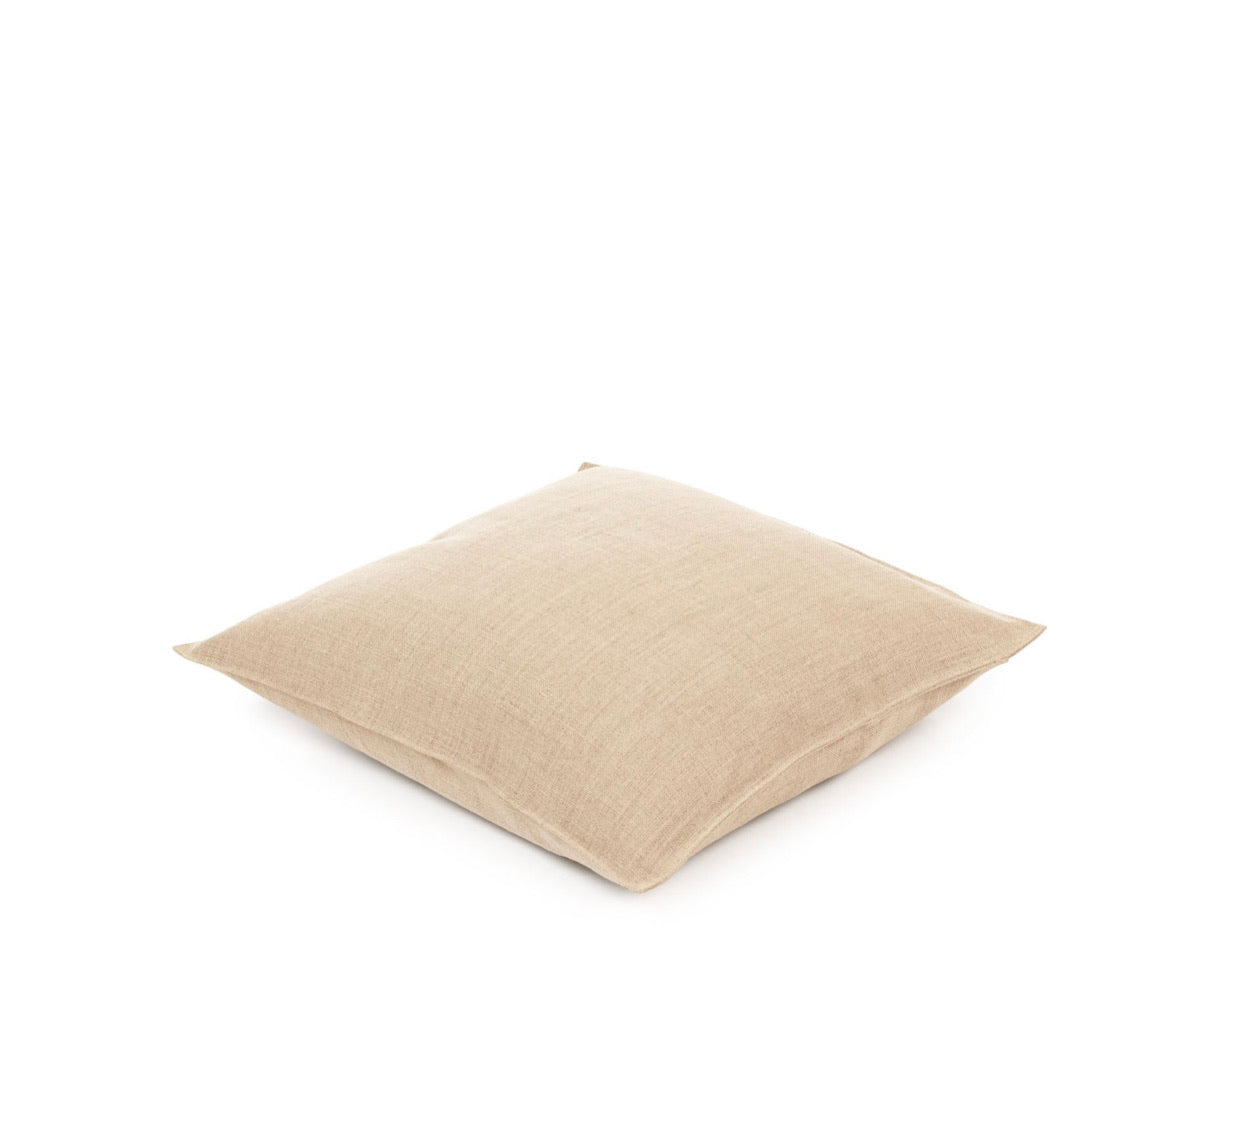 Napoli Vintage Toss Pillow